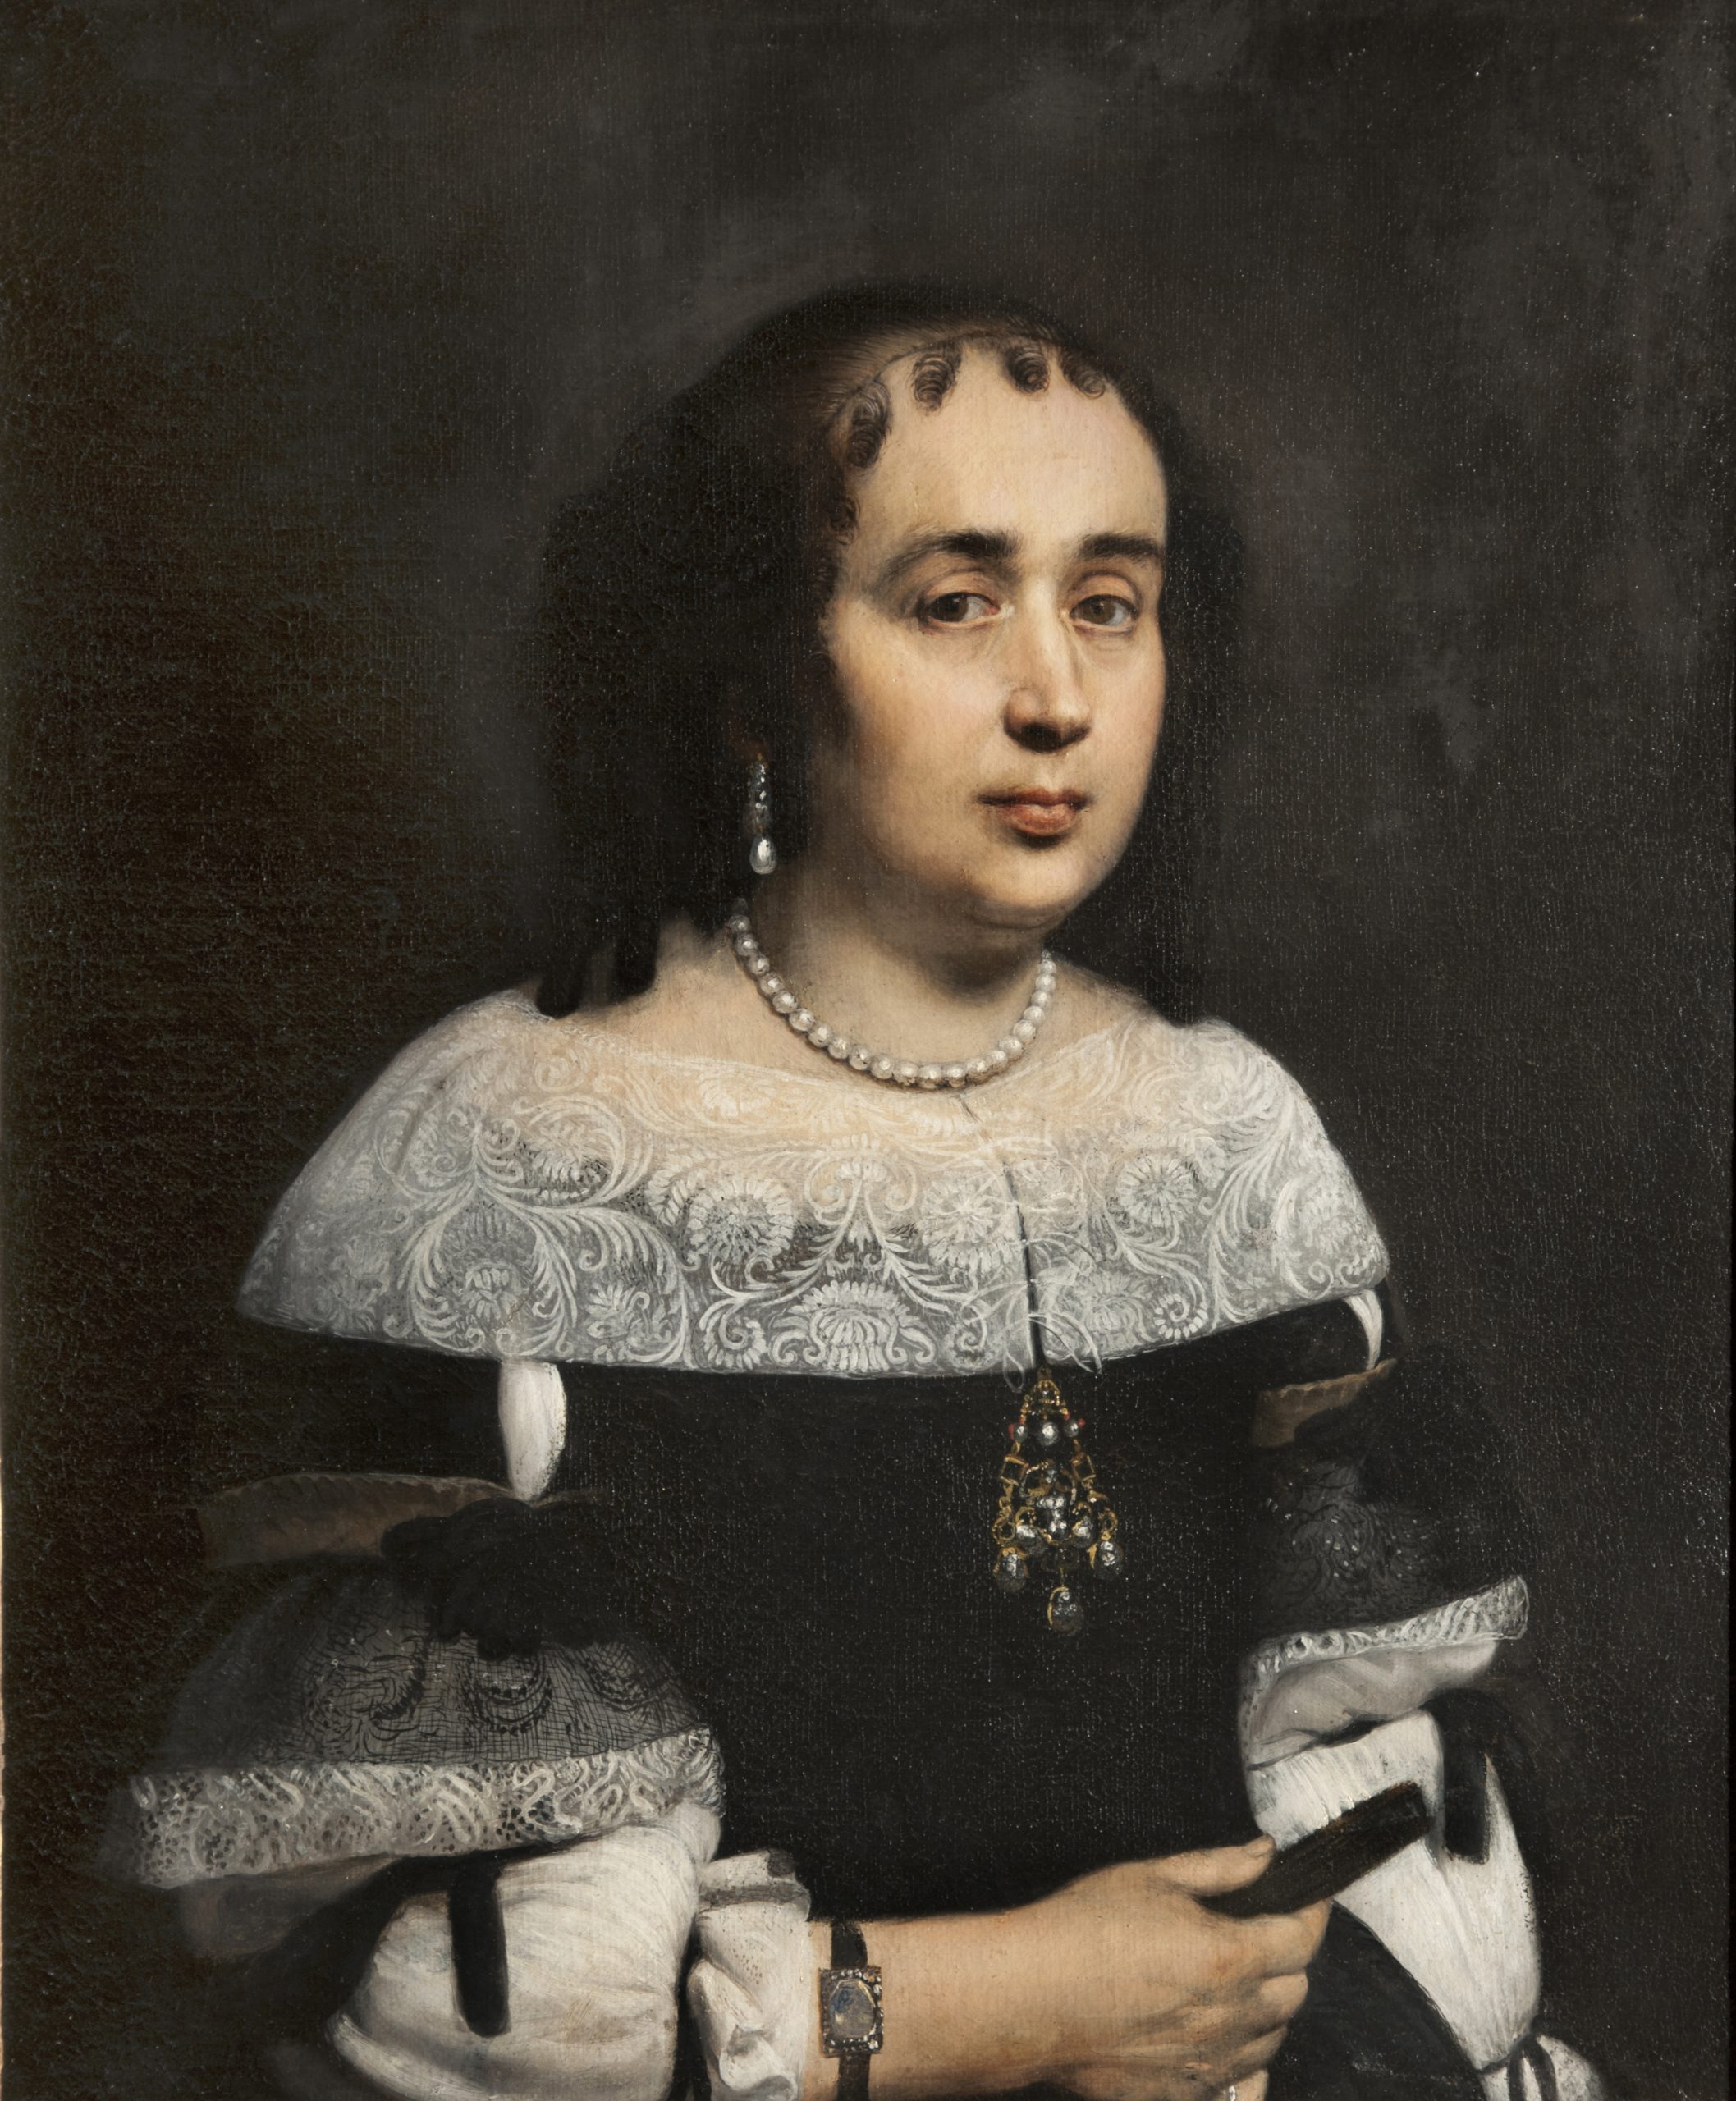 A woman wearing pearls and a dark gown